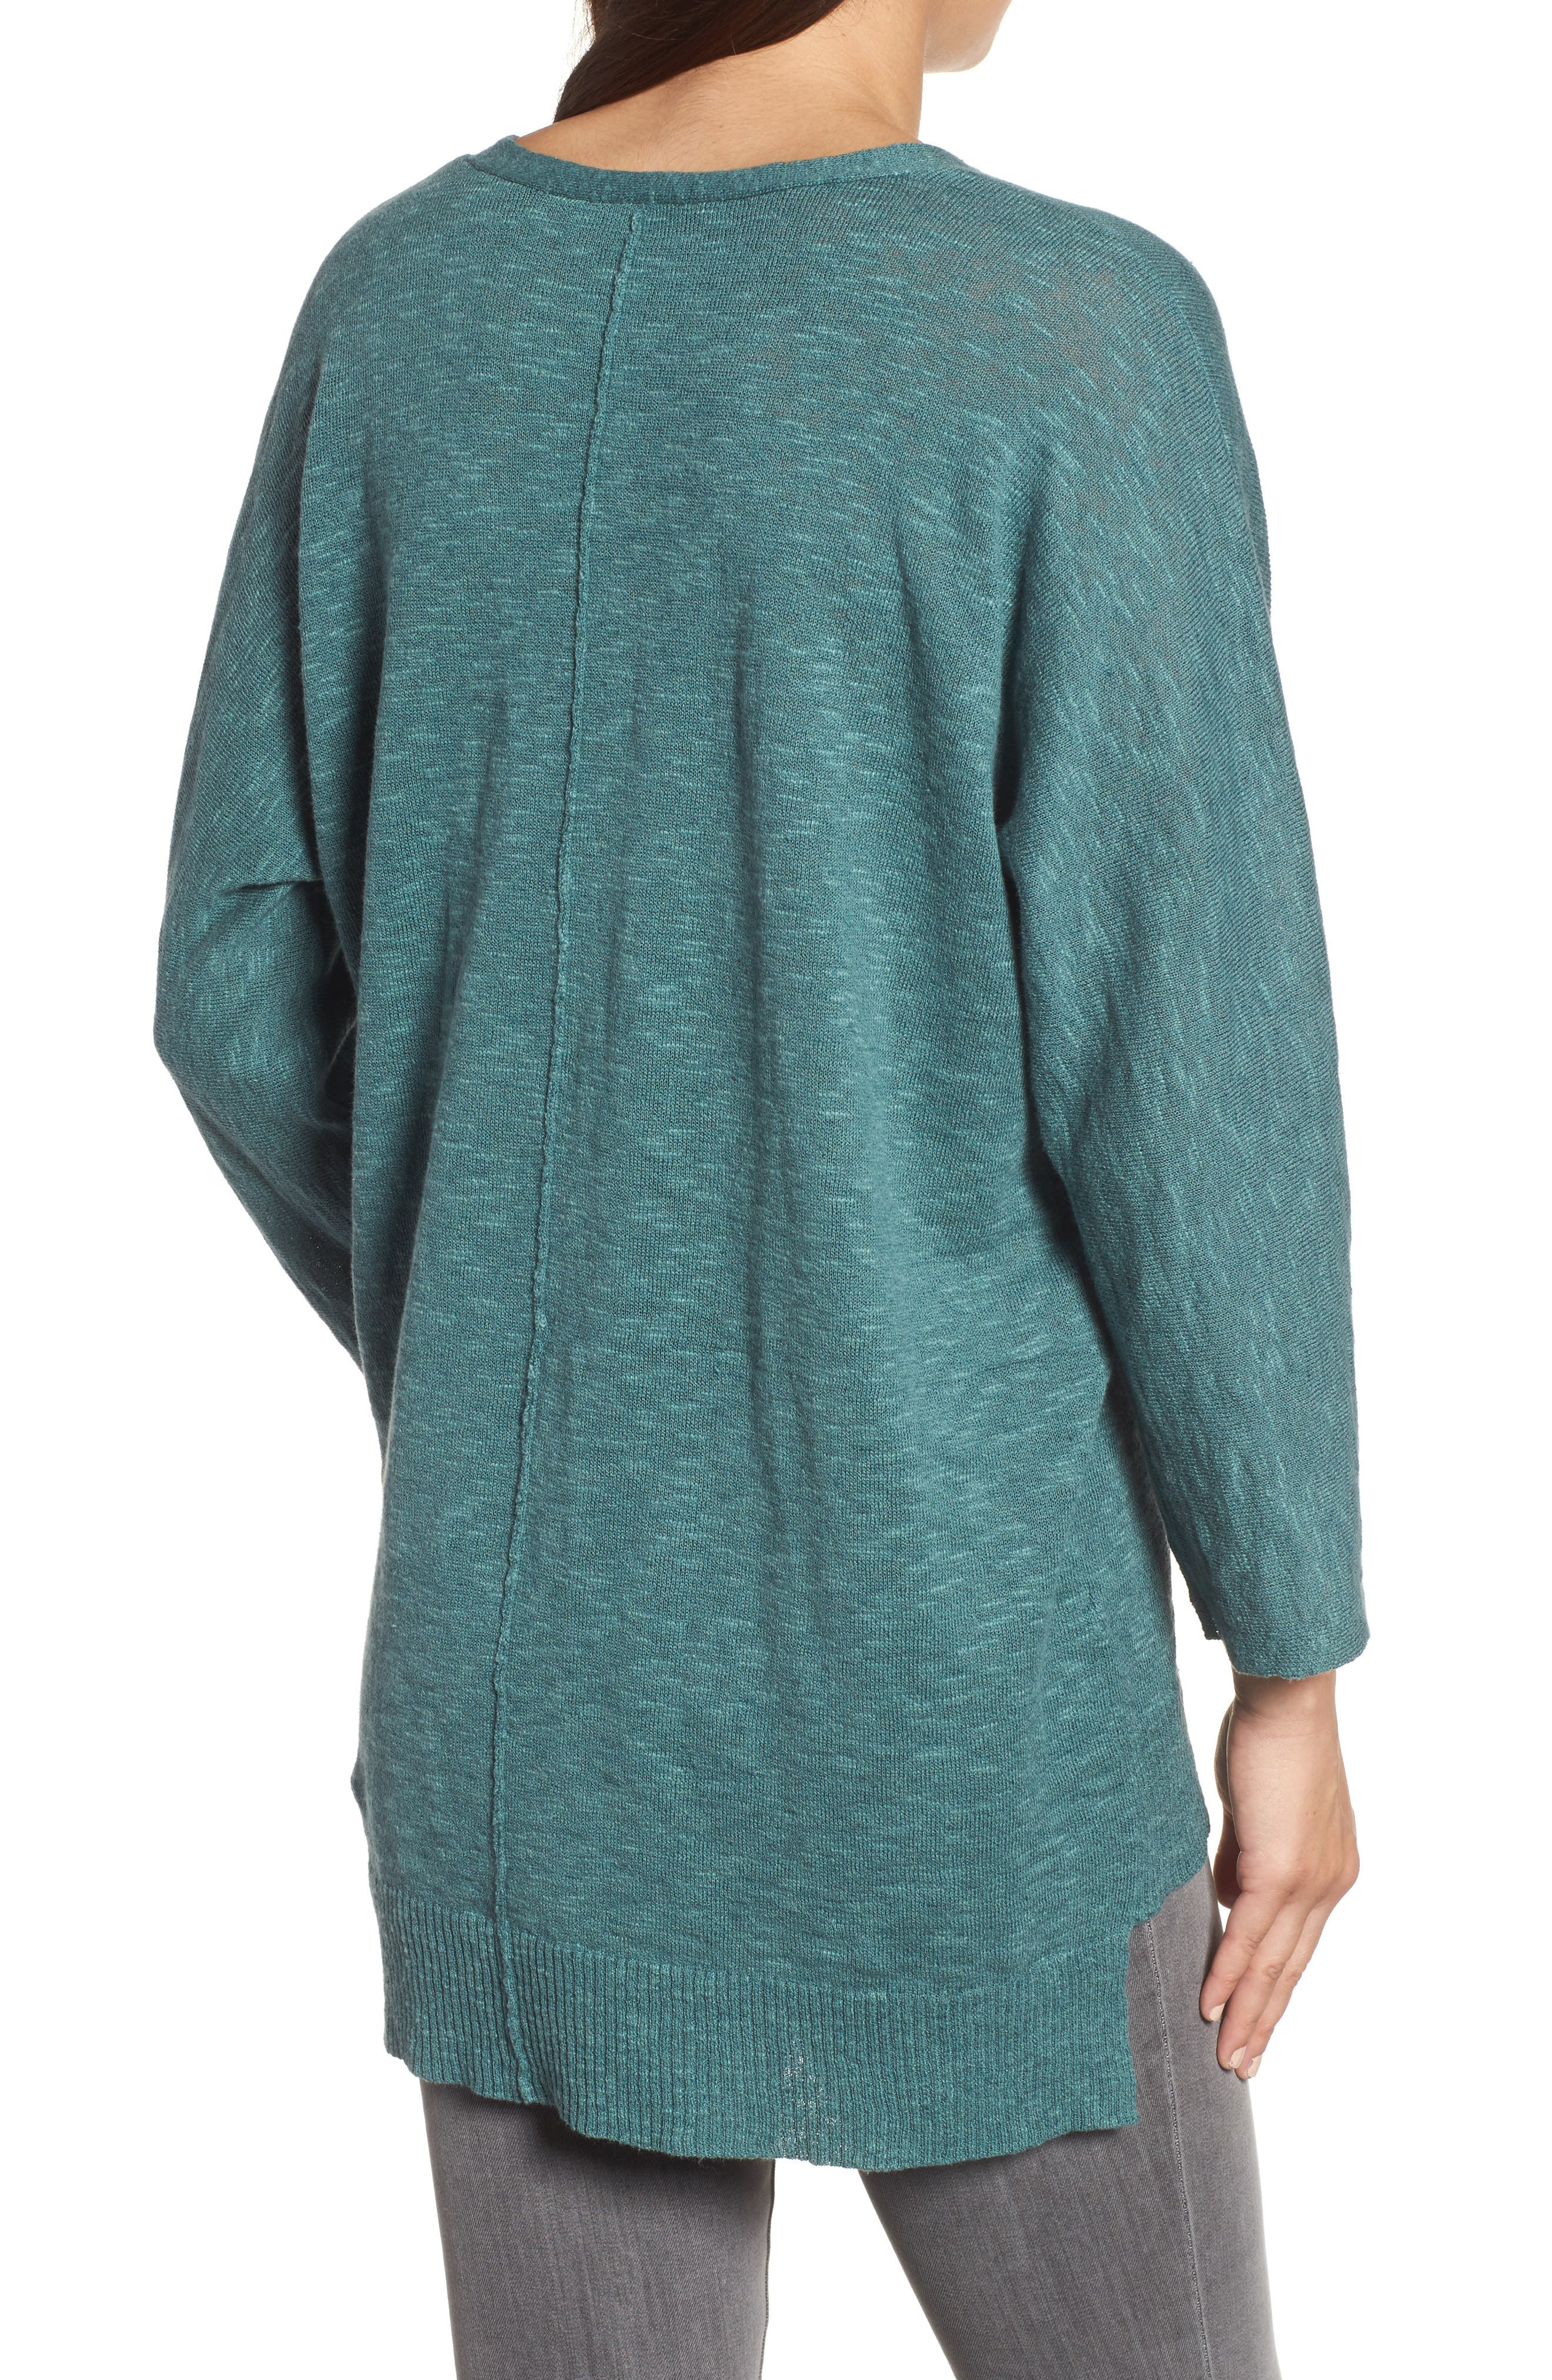 Organic Linen & Cotton Sweater,                             Alternate thumbnail 2, color,                             Teal